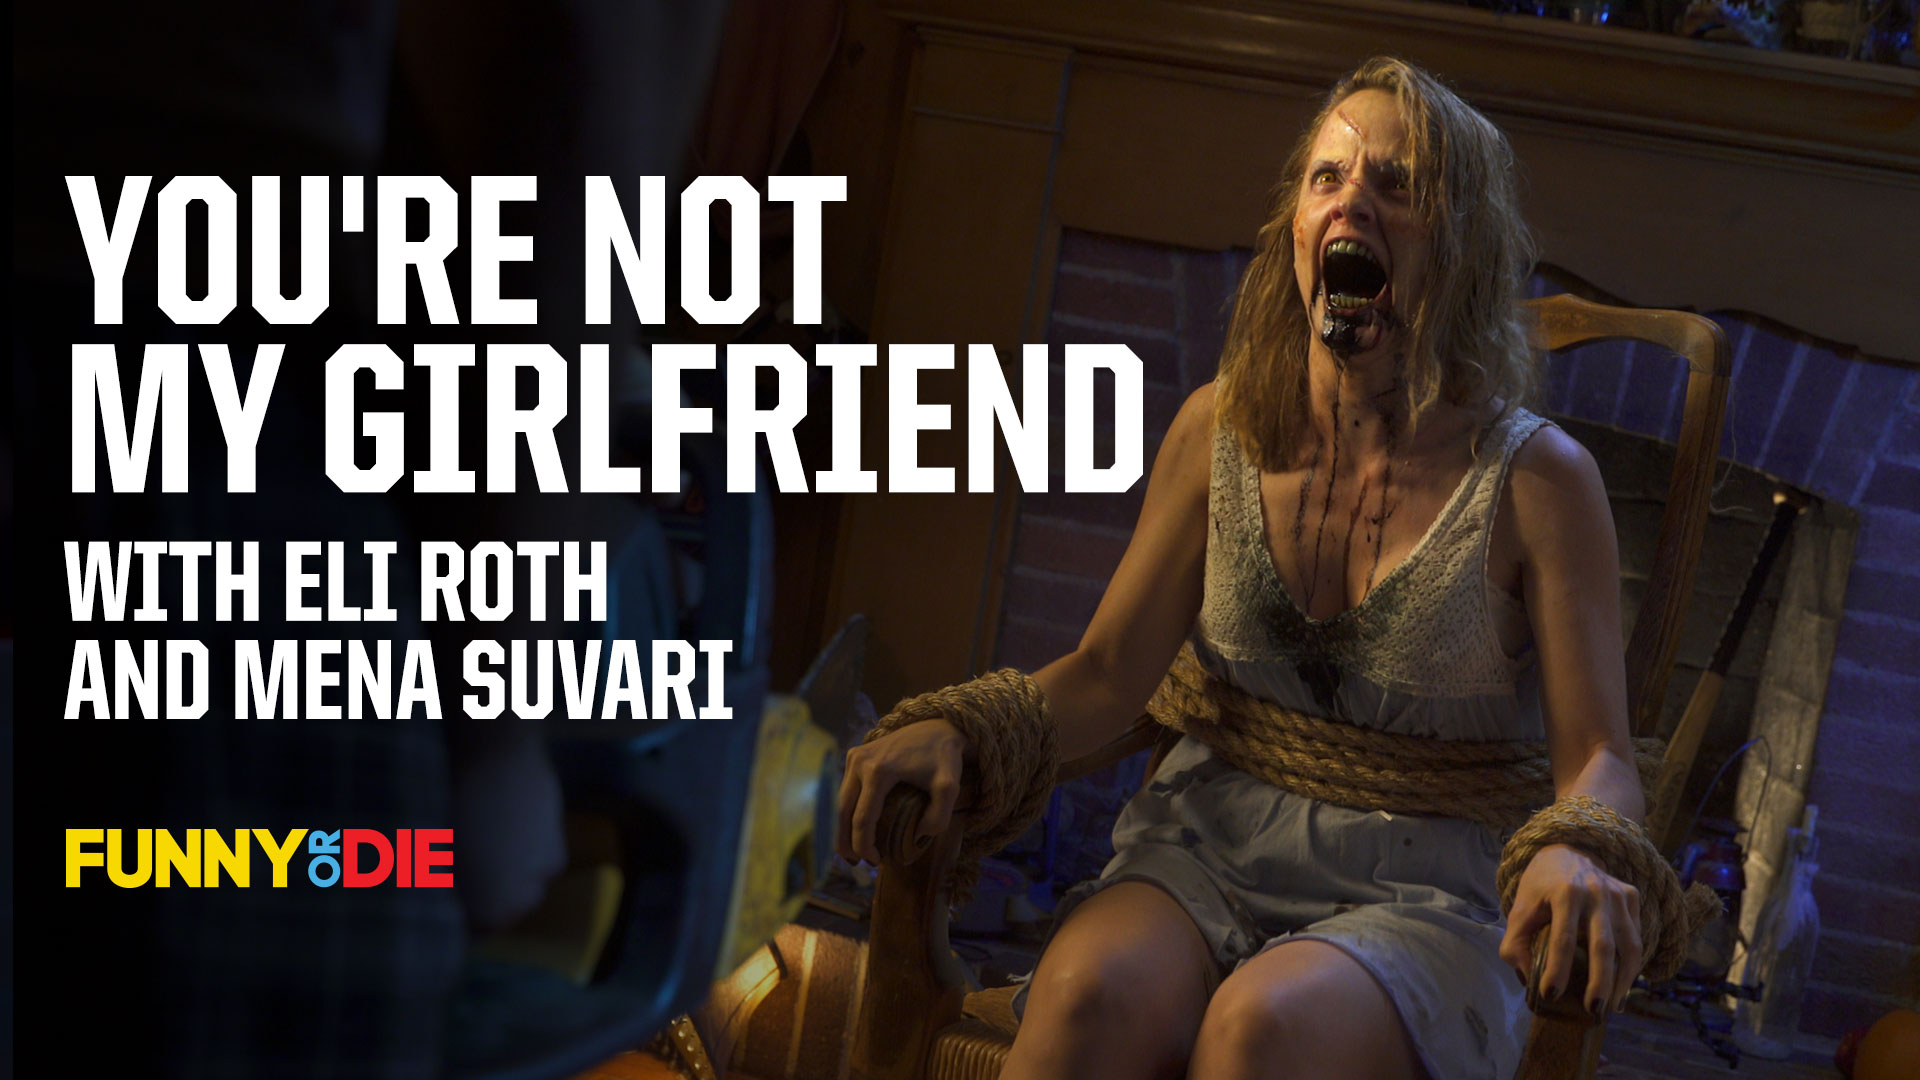 You're Not My Girlfriend with Eli Roth And Mena Suvari